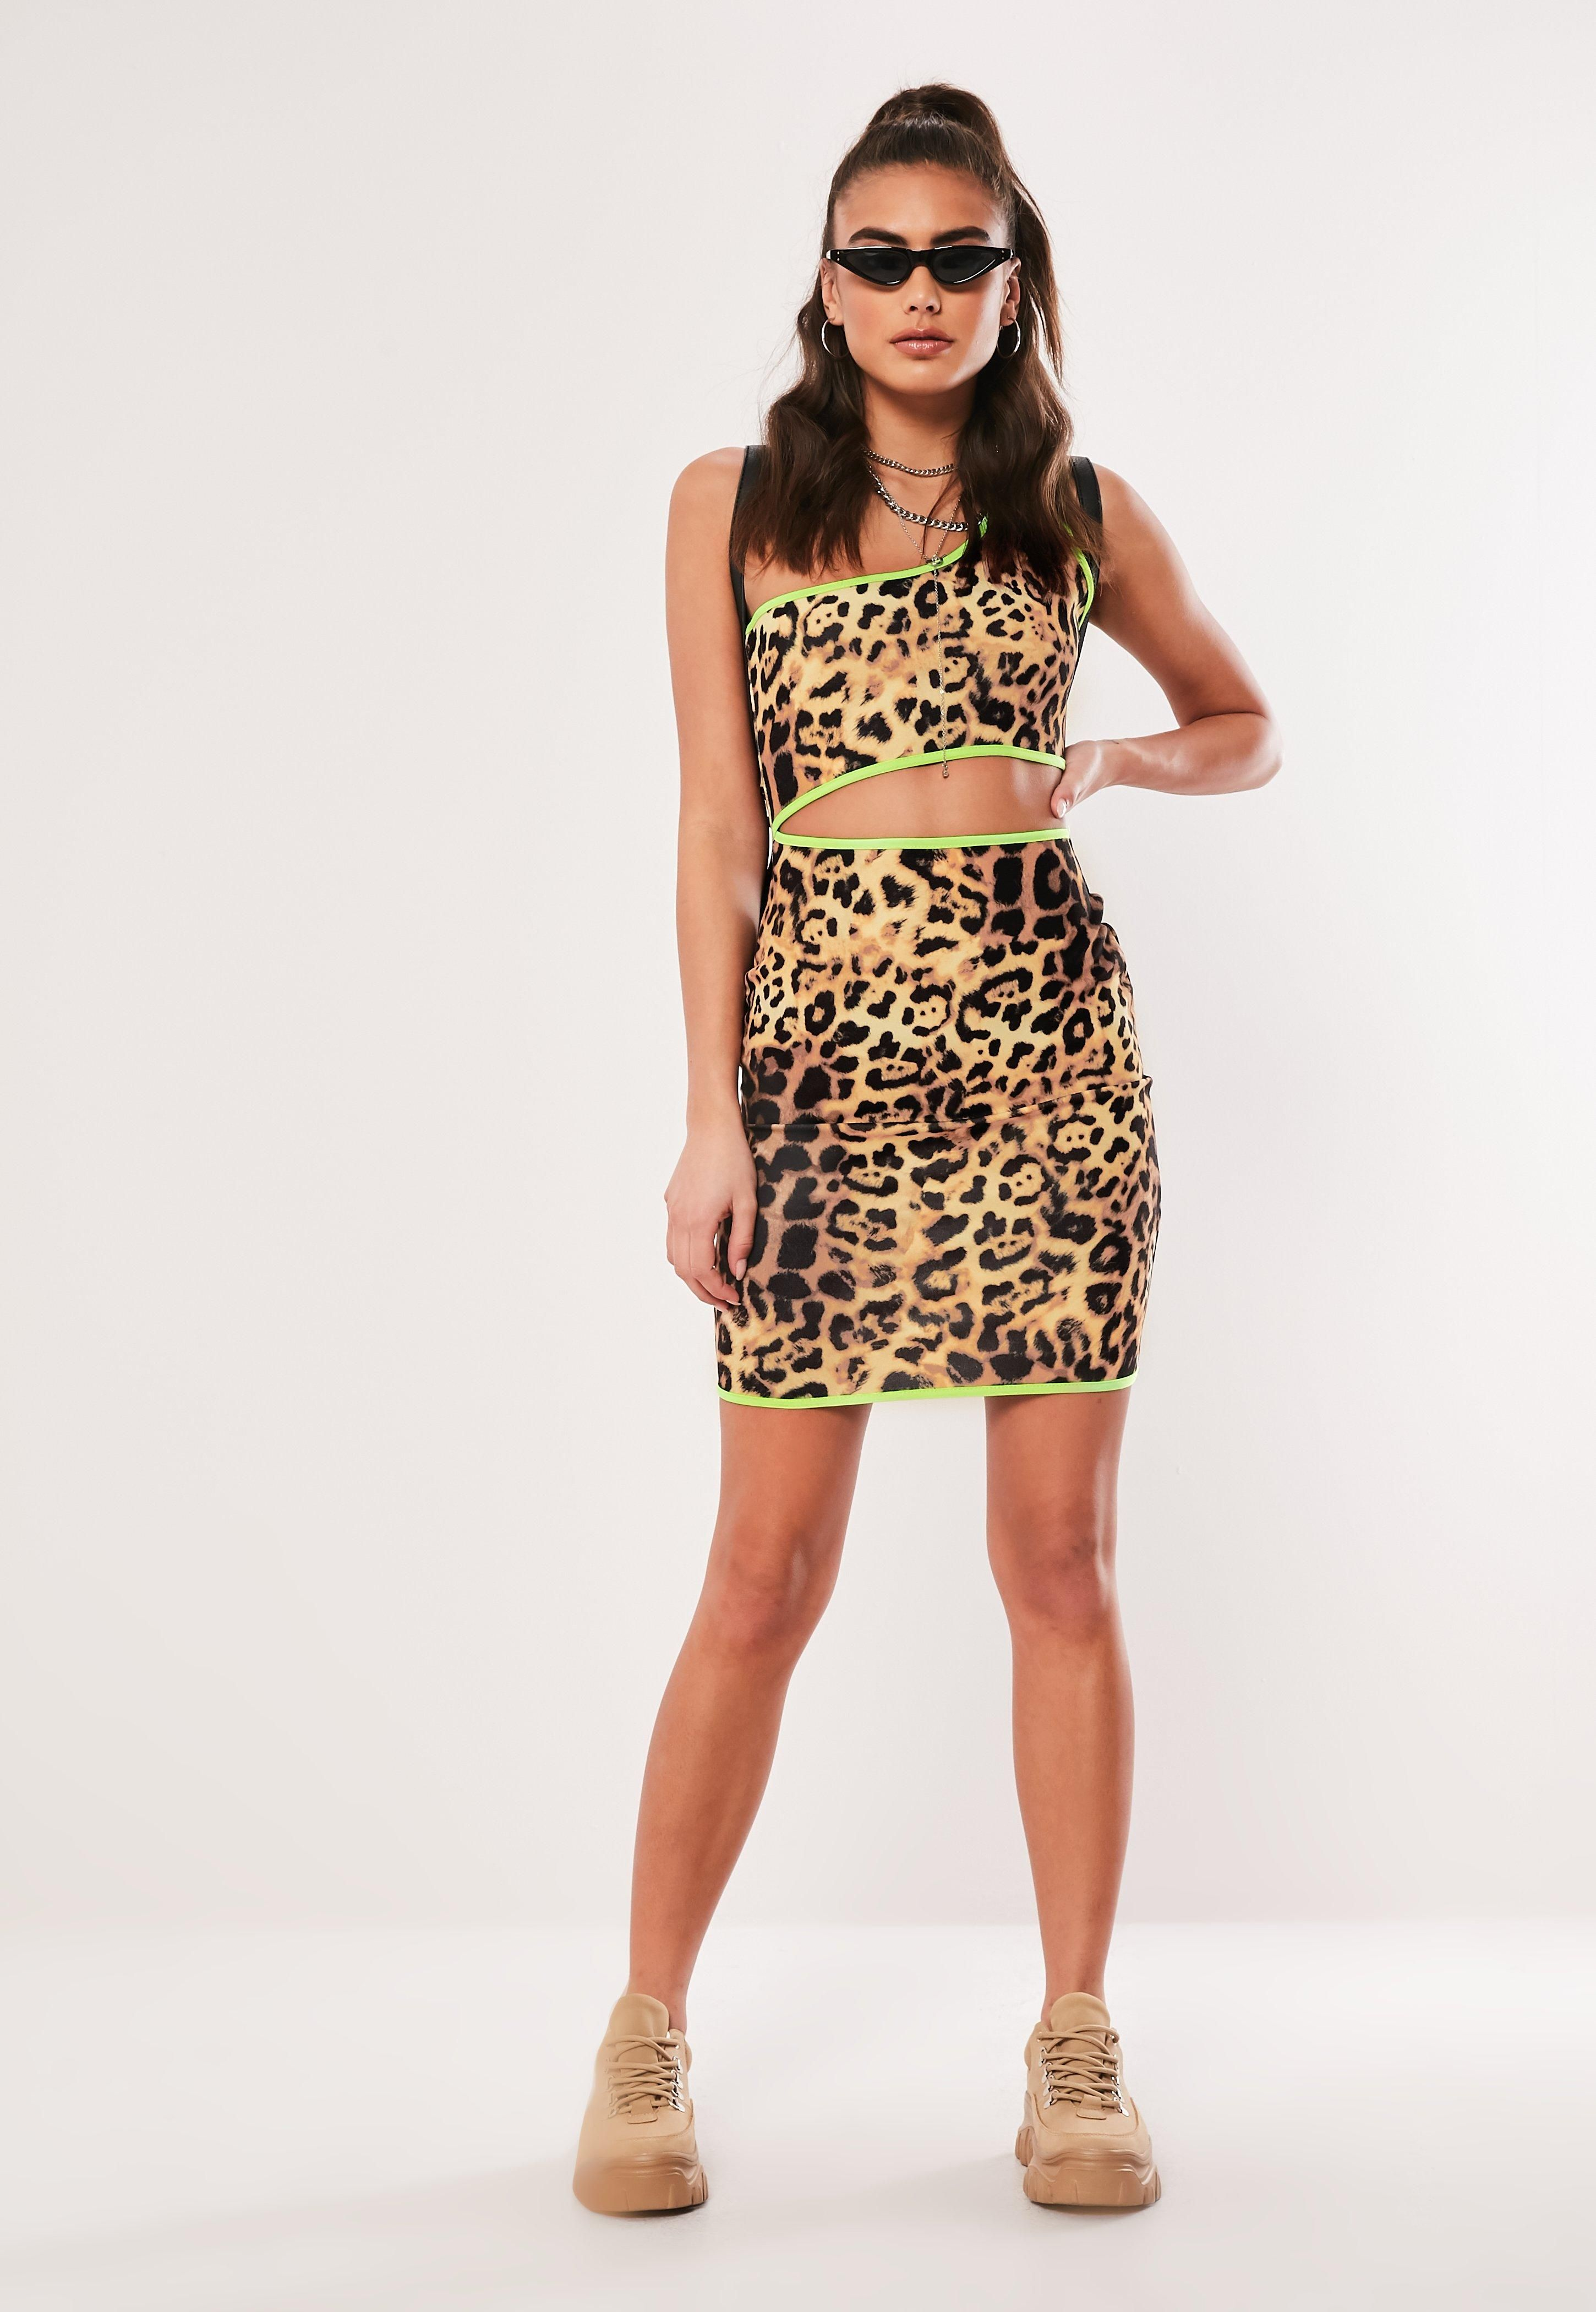 437ce0743516 Brown Leopard Print One Shoulder Mini Dress #Sponsored #Print, #AFFILIATE, # Leopard, #Brown